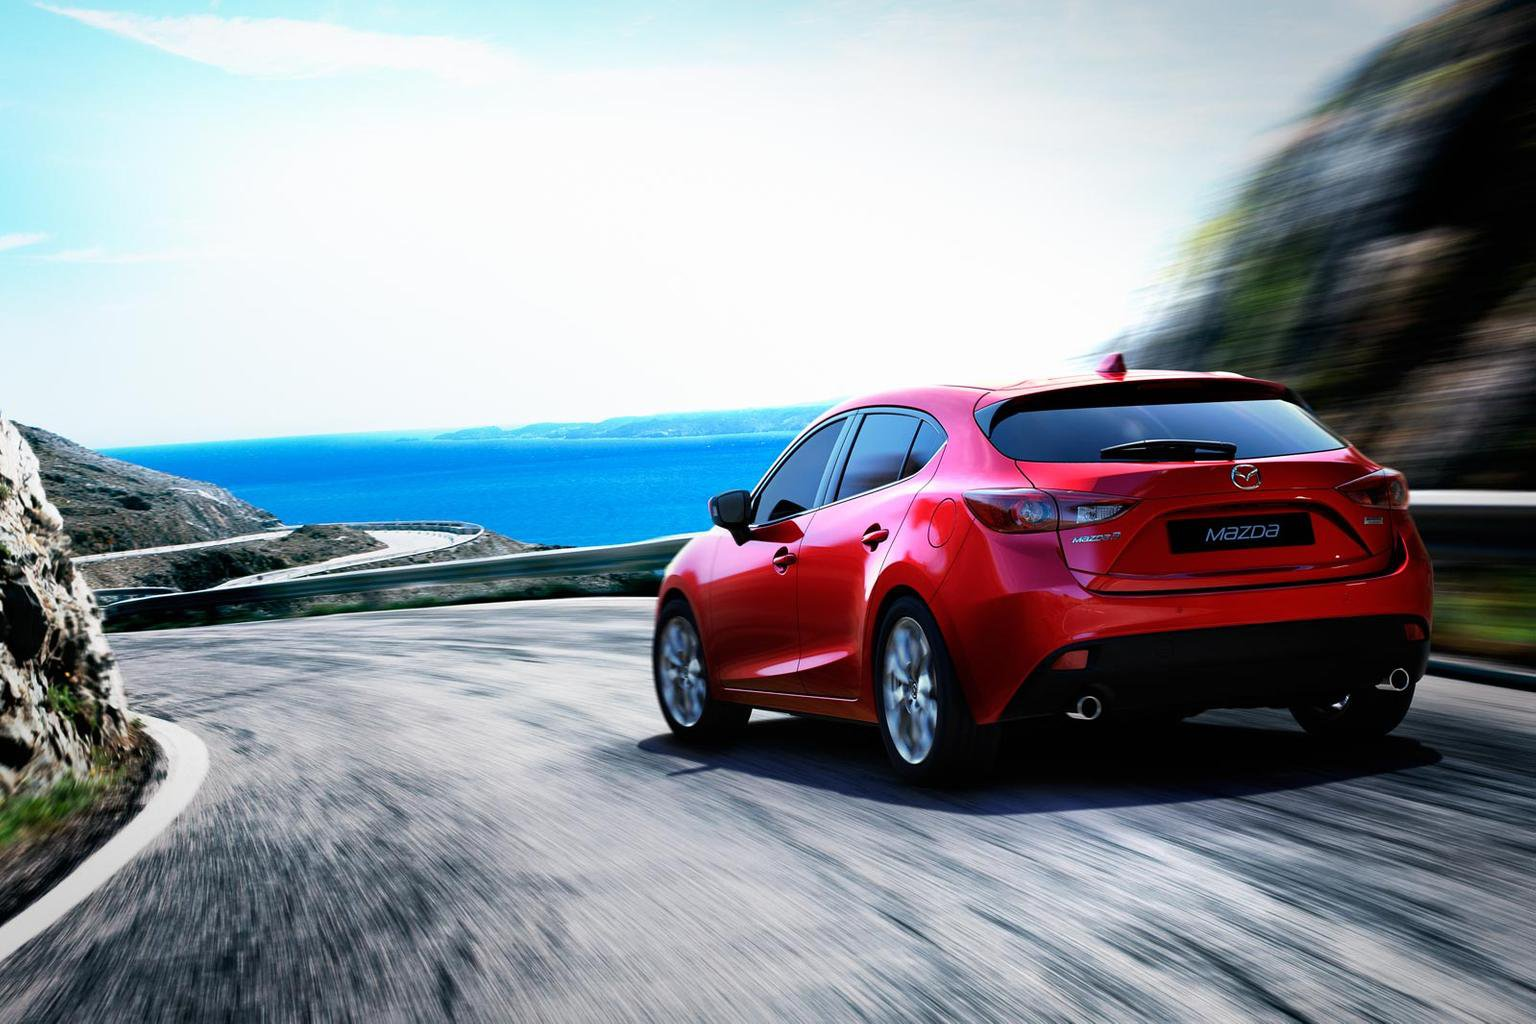 3 ways the all-new Mazda3 could save you money